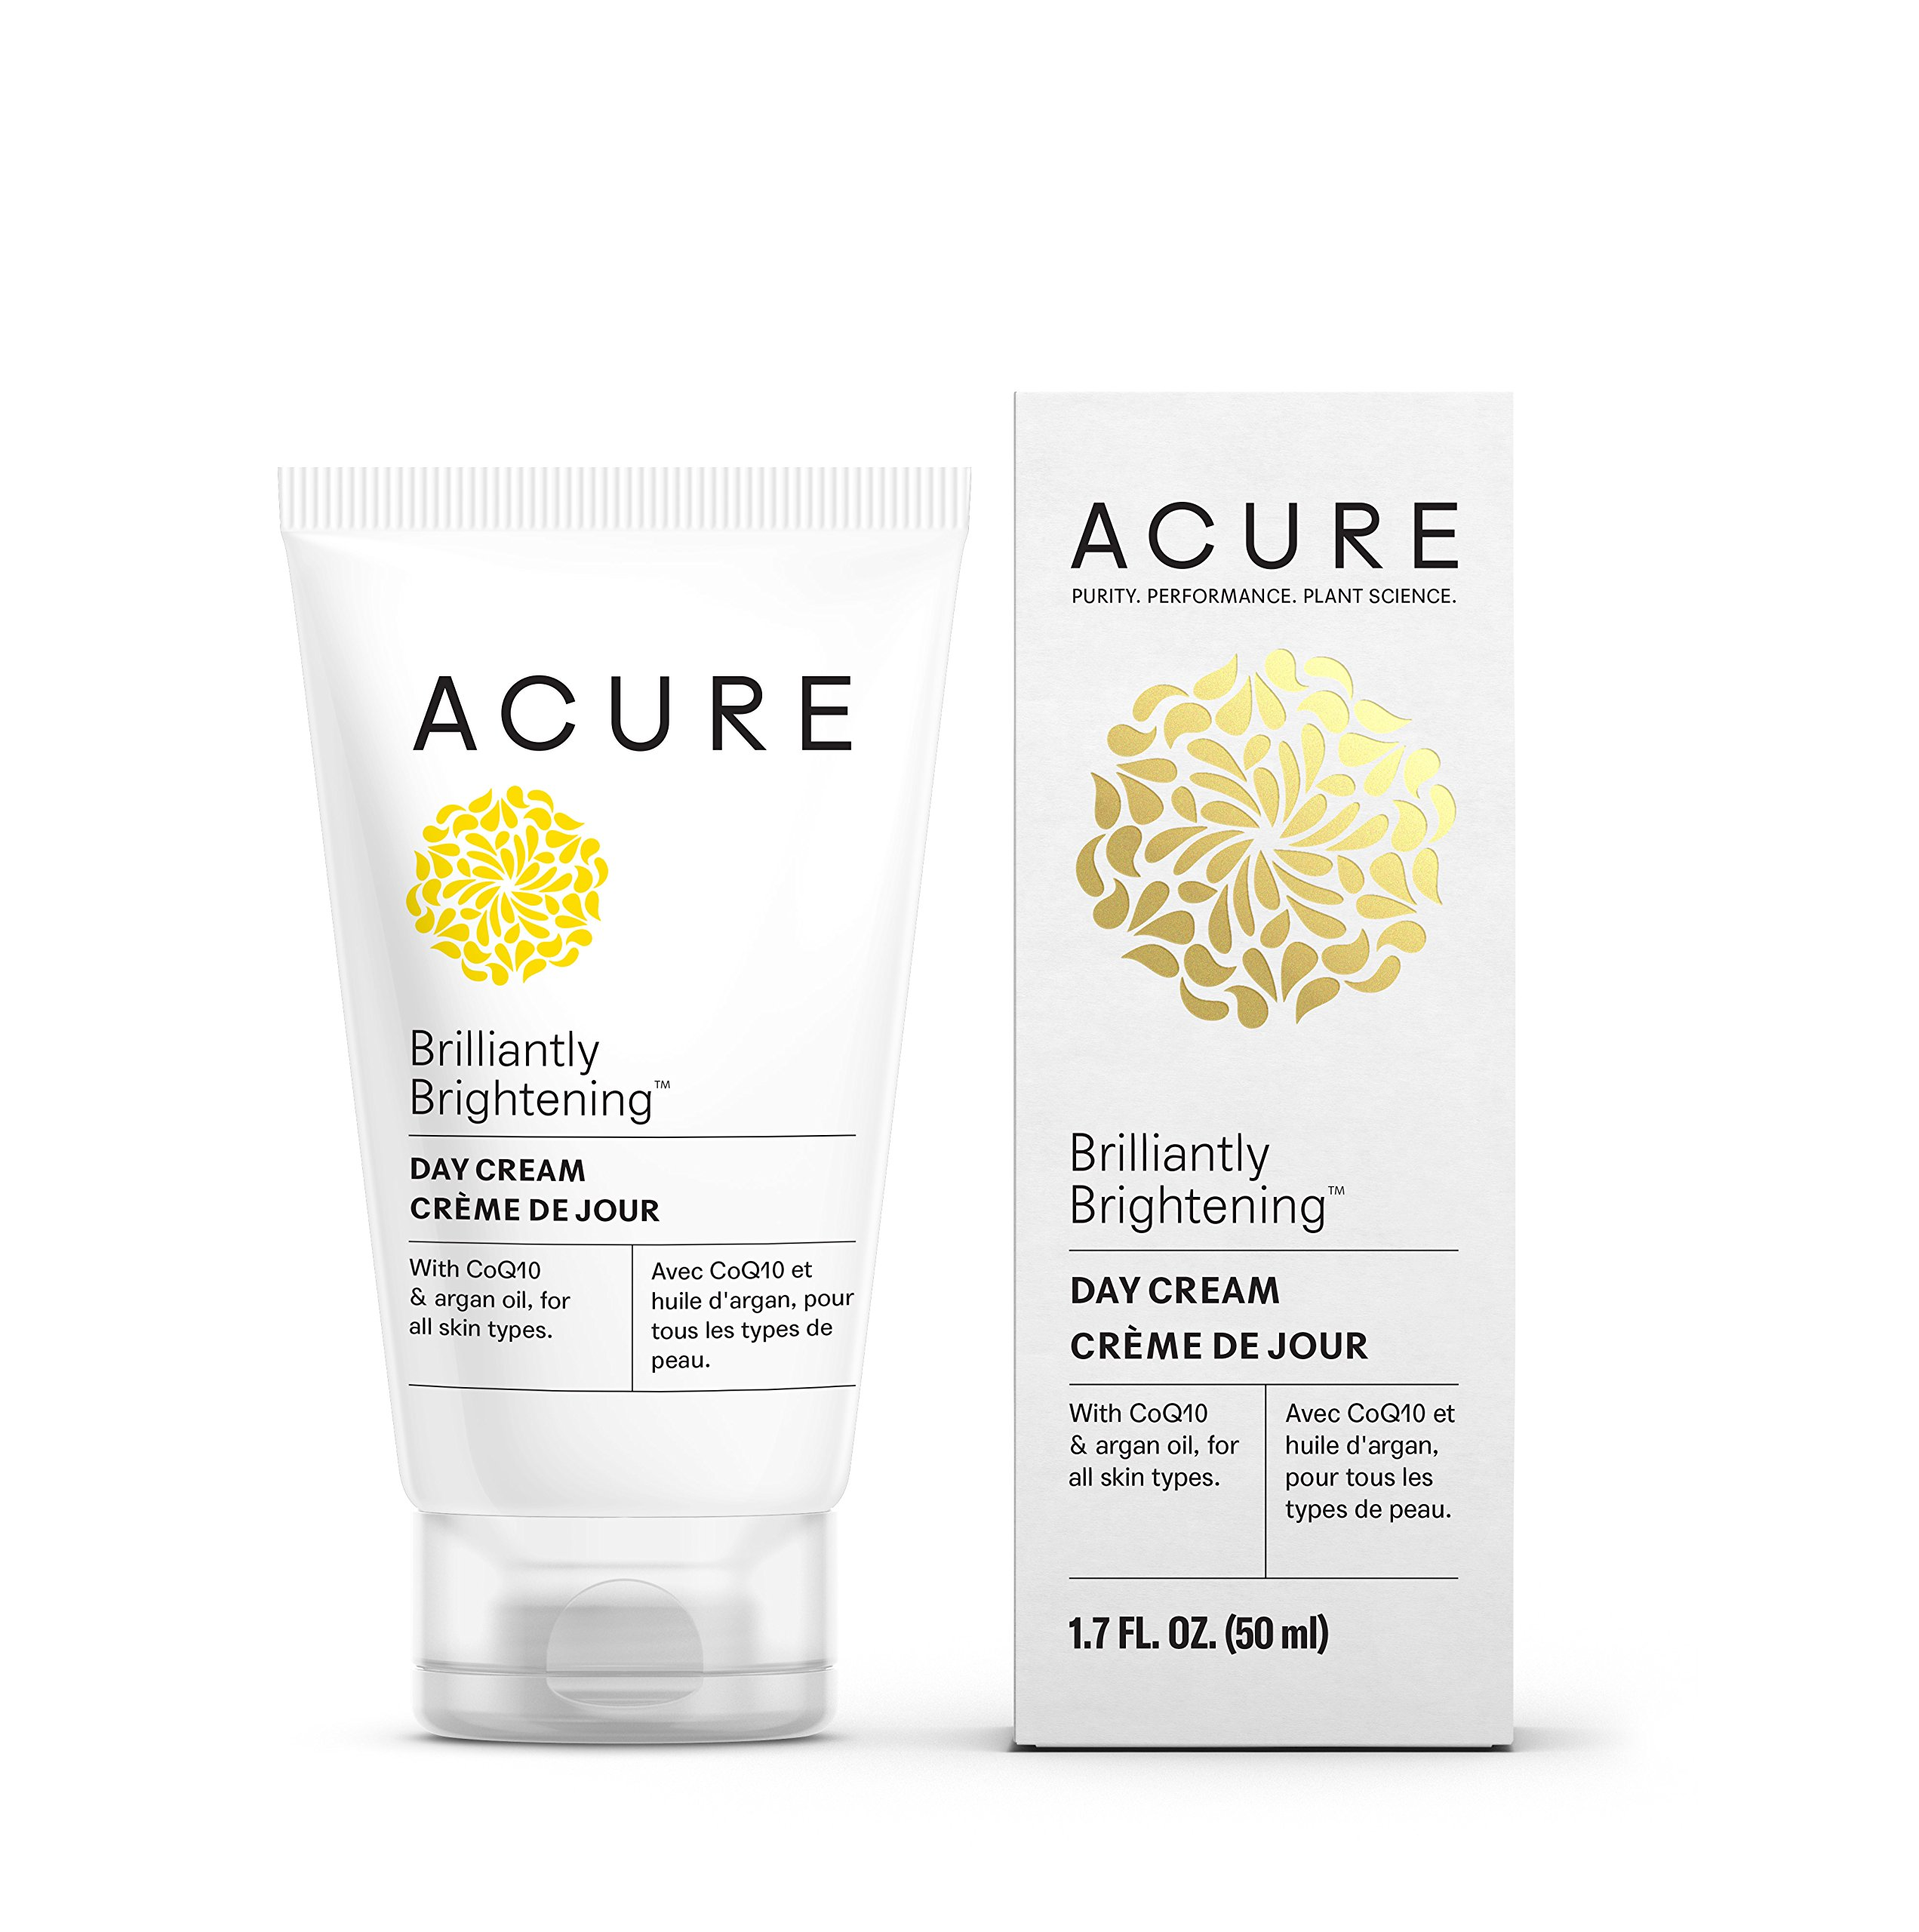 Acure Brilliantly Brightening Day Cream, 1.7 Fluid Ounces